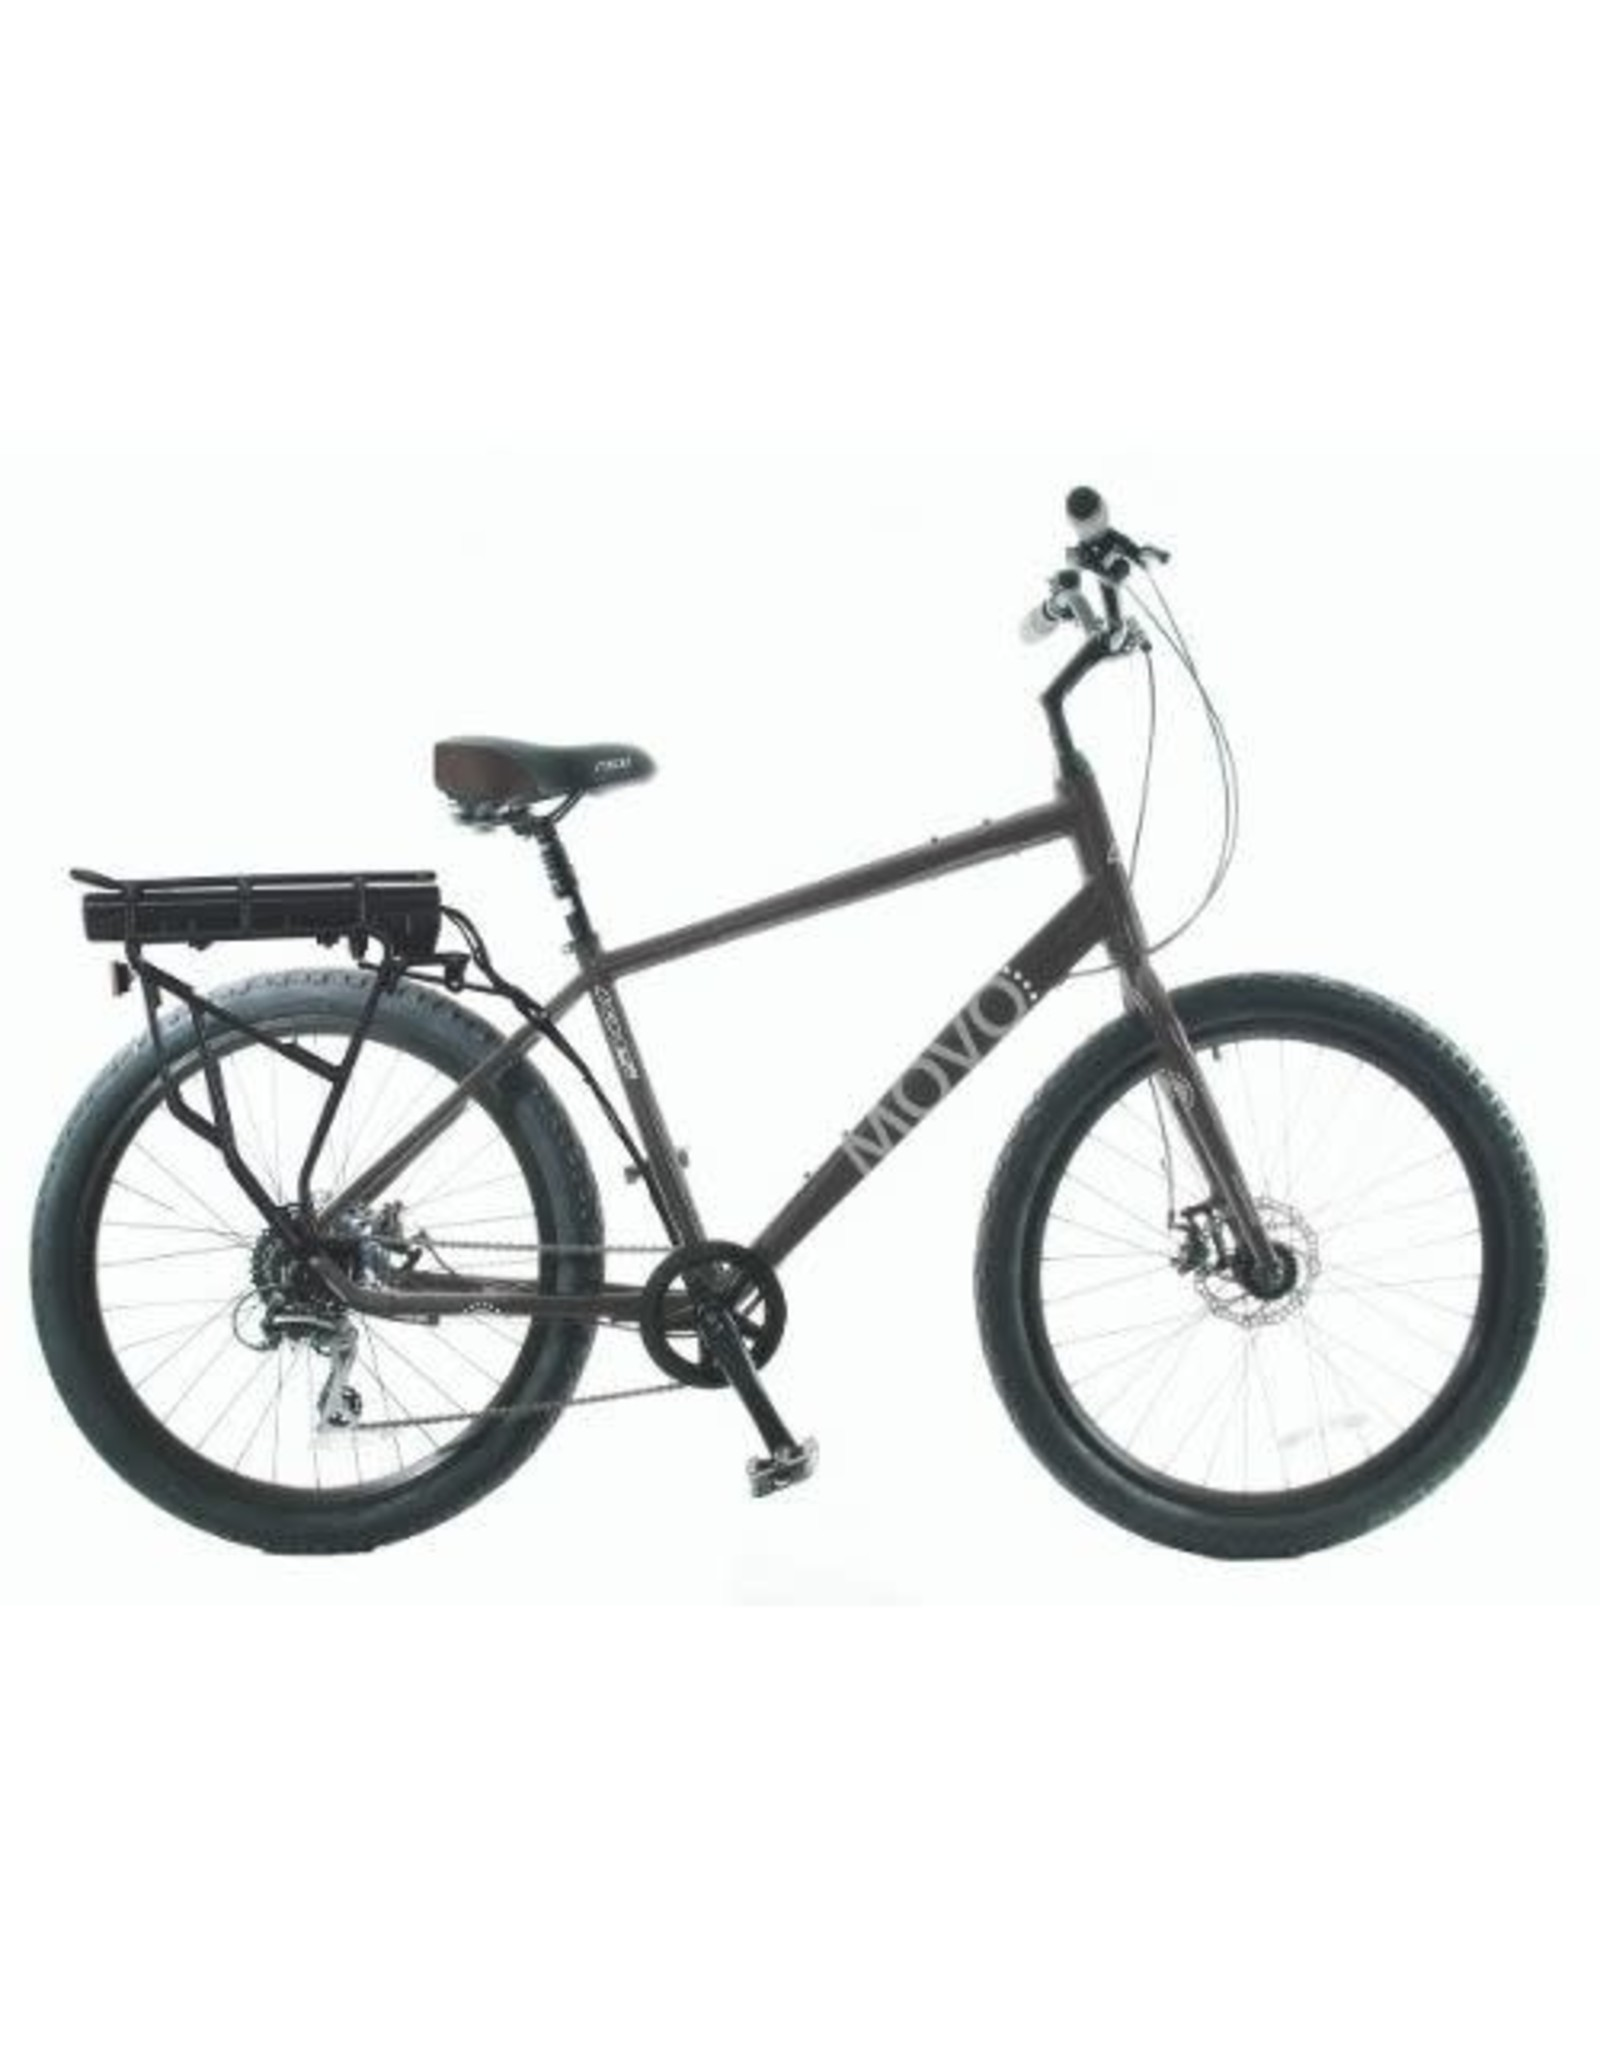 KHS Movo 1.0 E Bike Dark Gray 2021